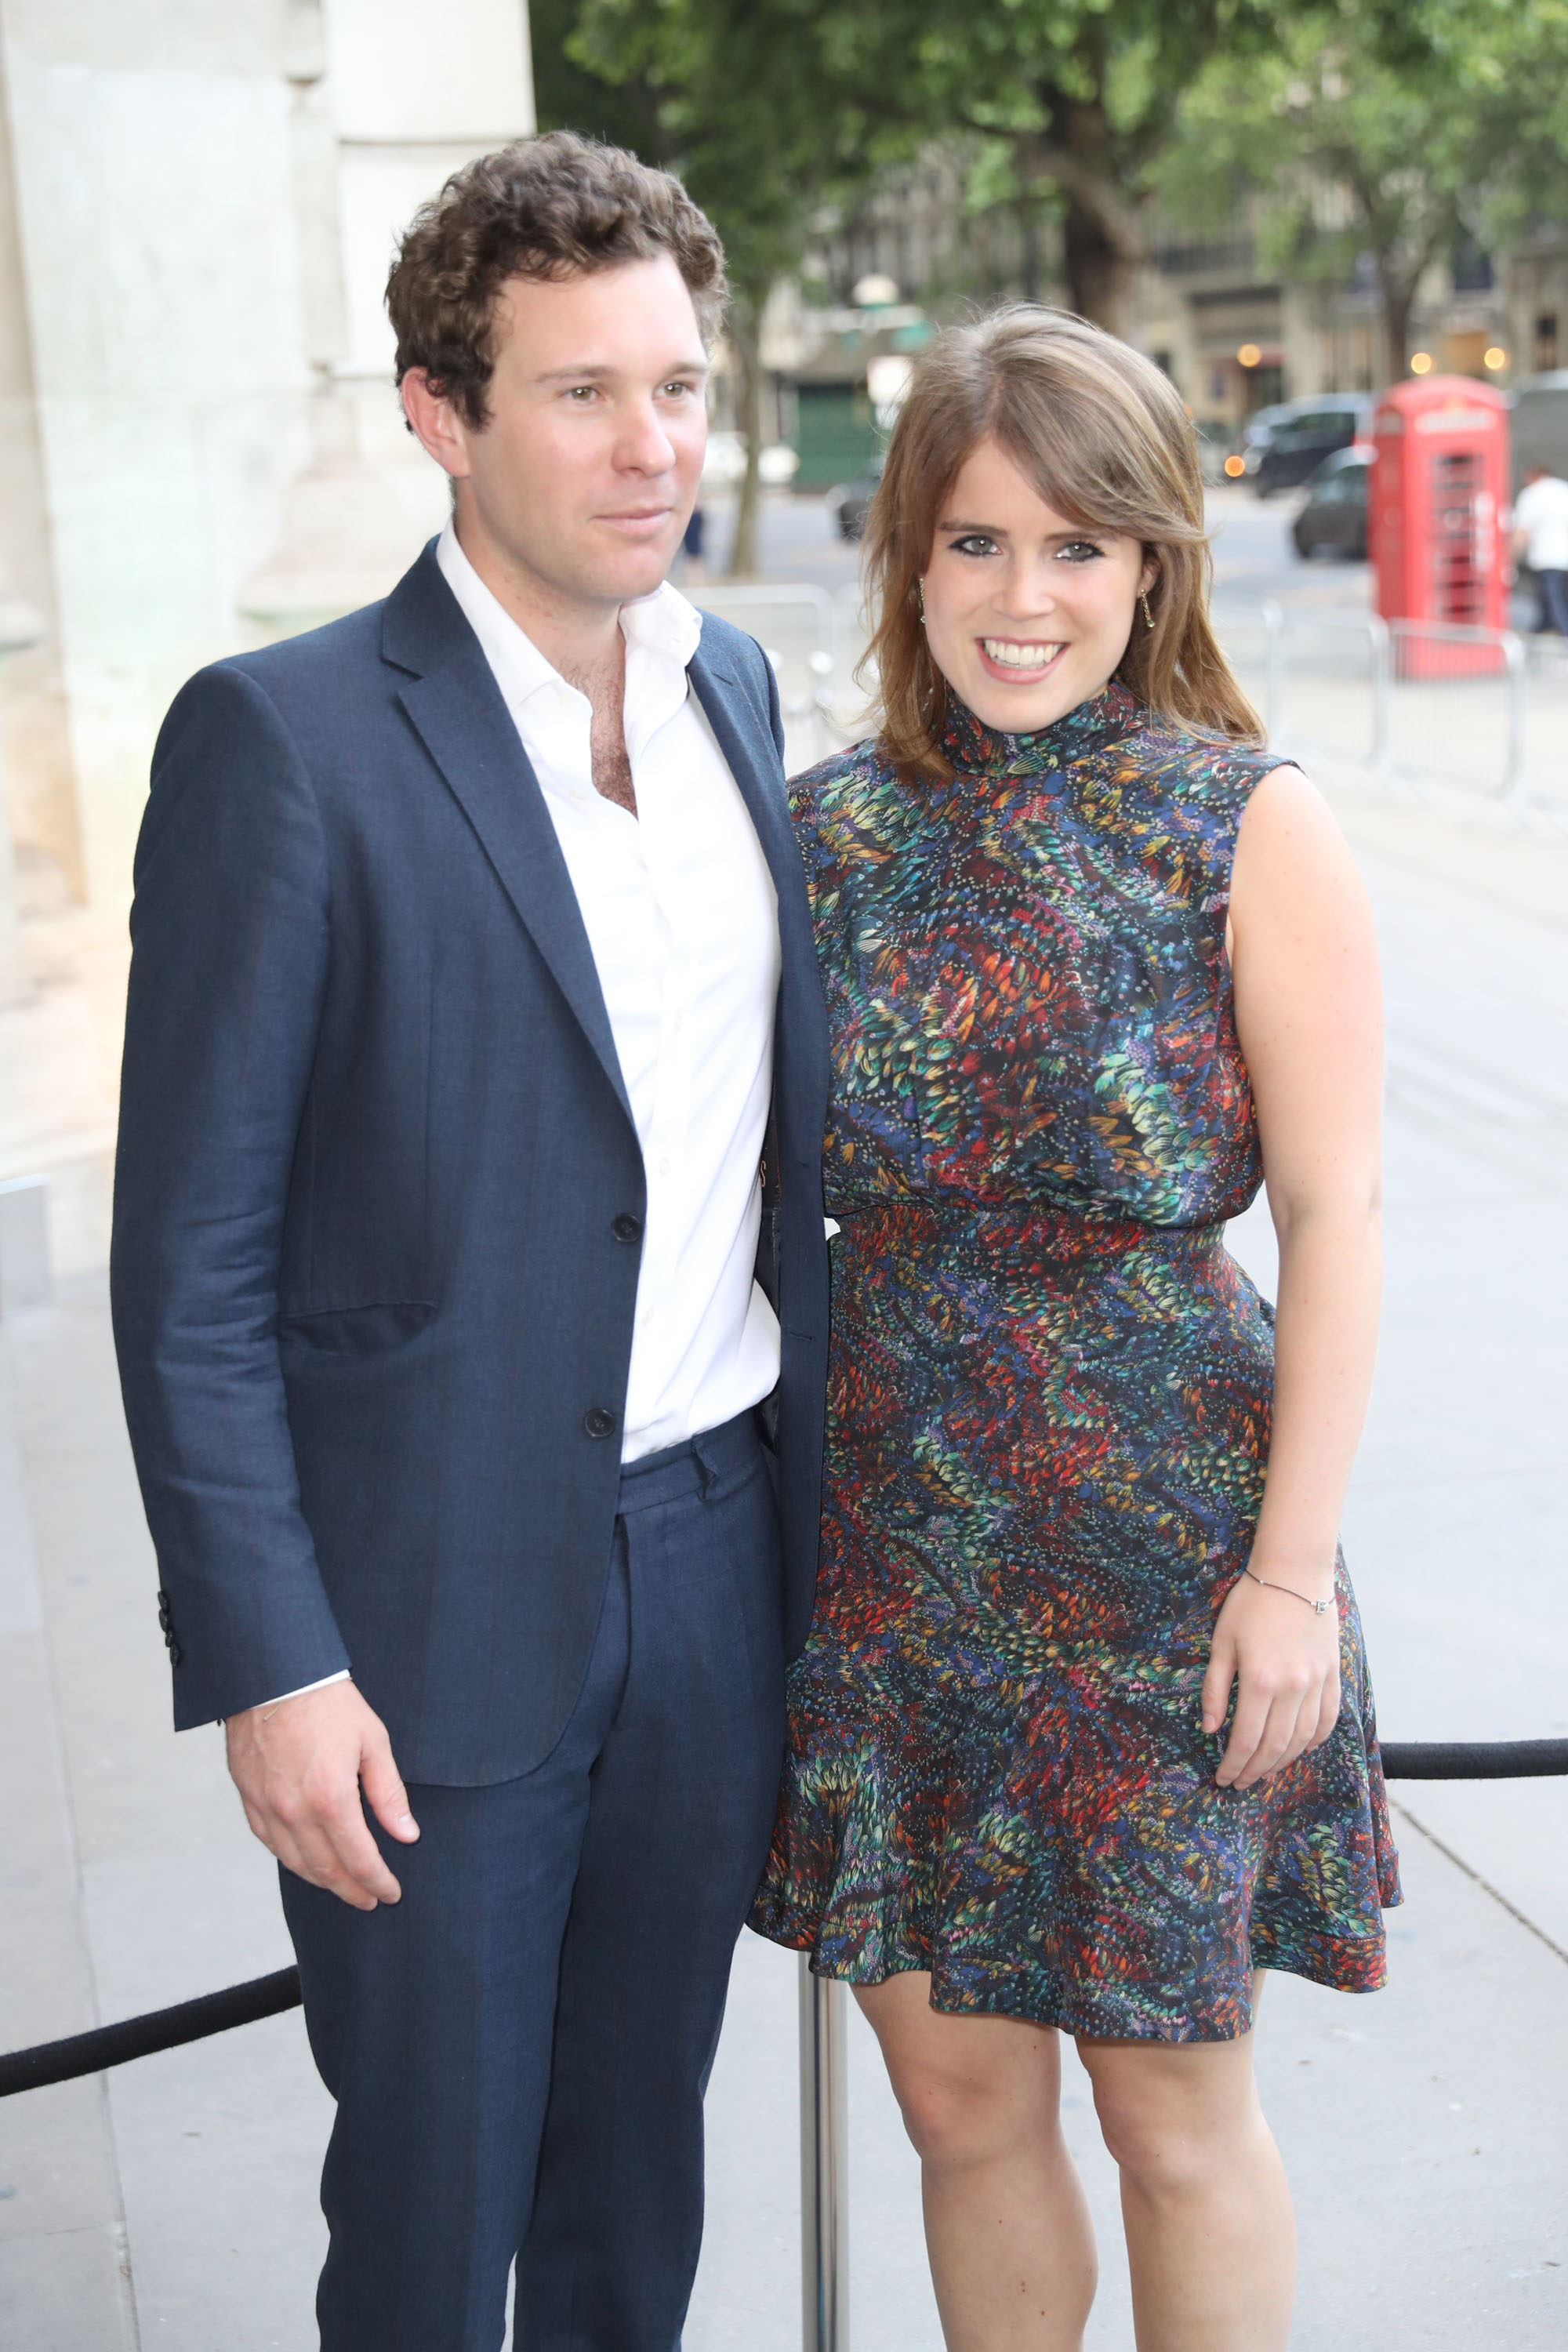 Jack Brooksbank and Princess Eugenie of York attend the V&A summer party at The V&A on June 21, 2017 in London, England. (Getty Images)